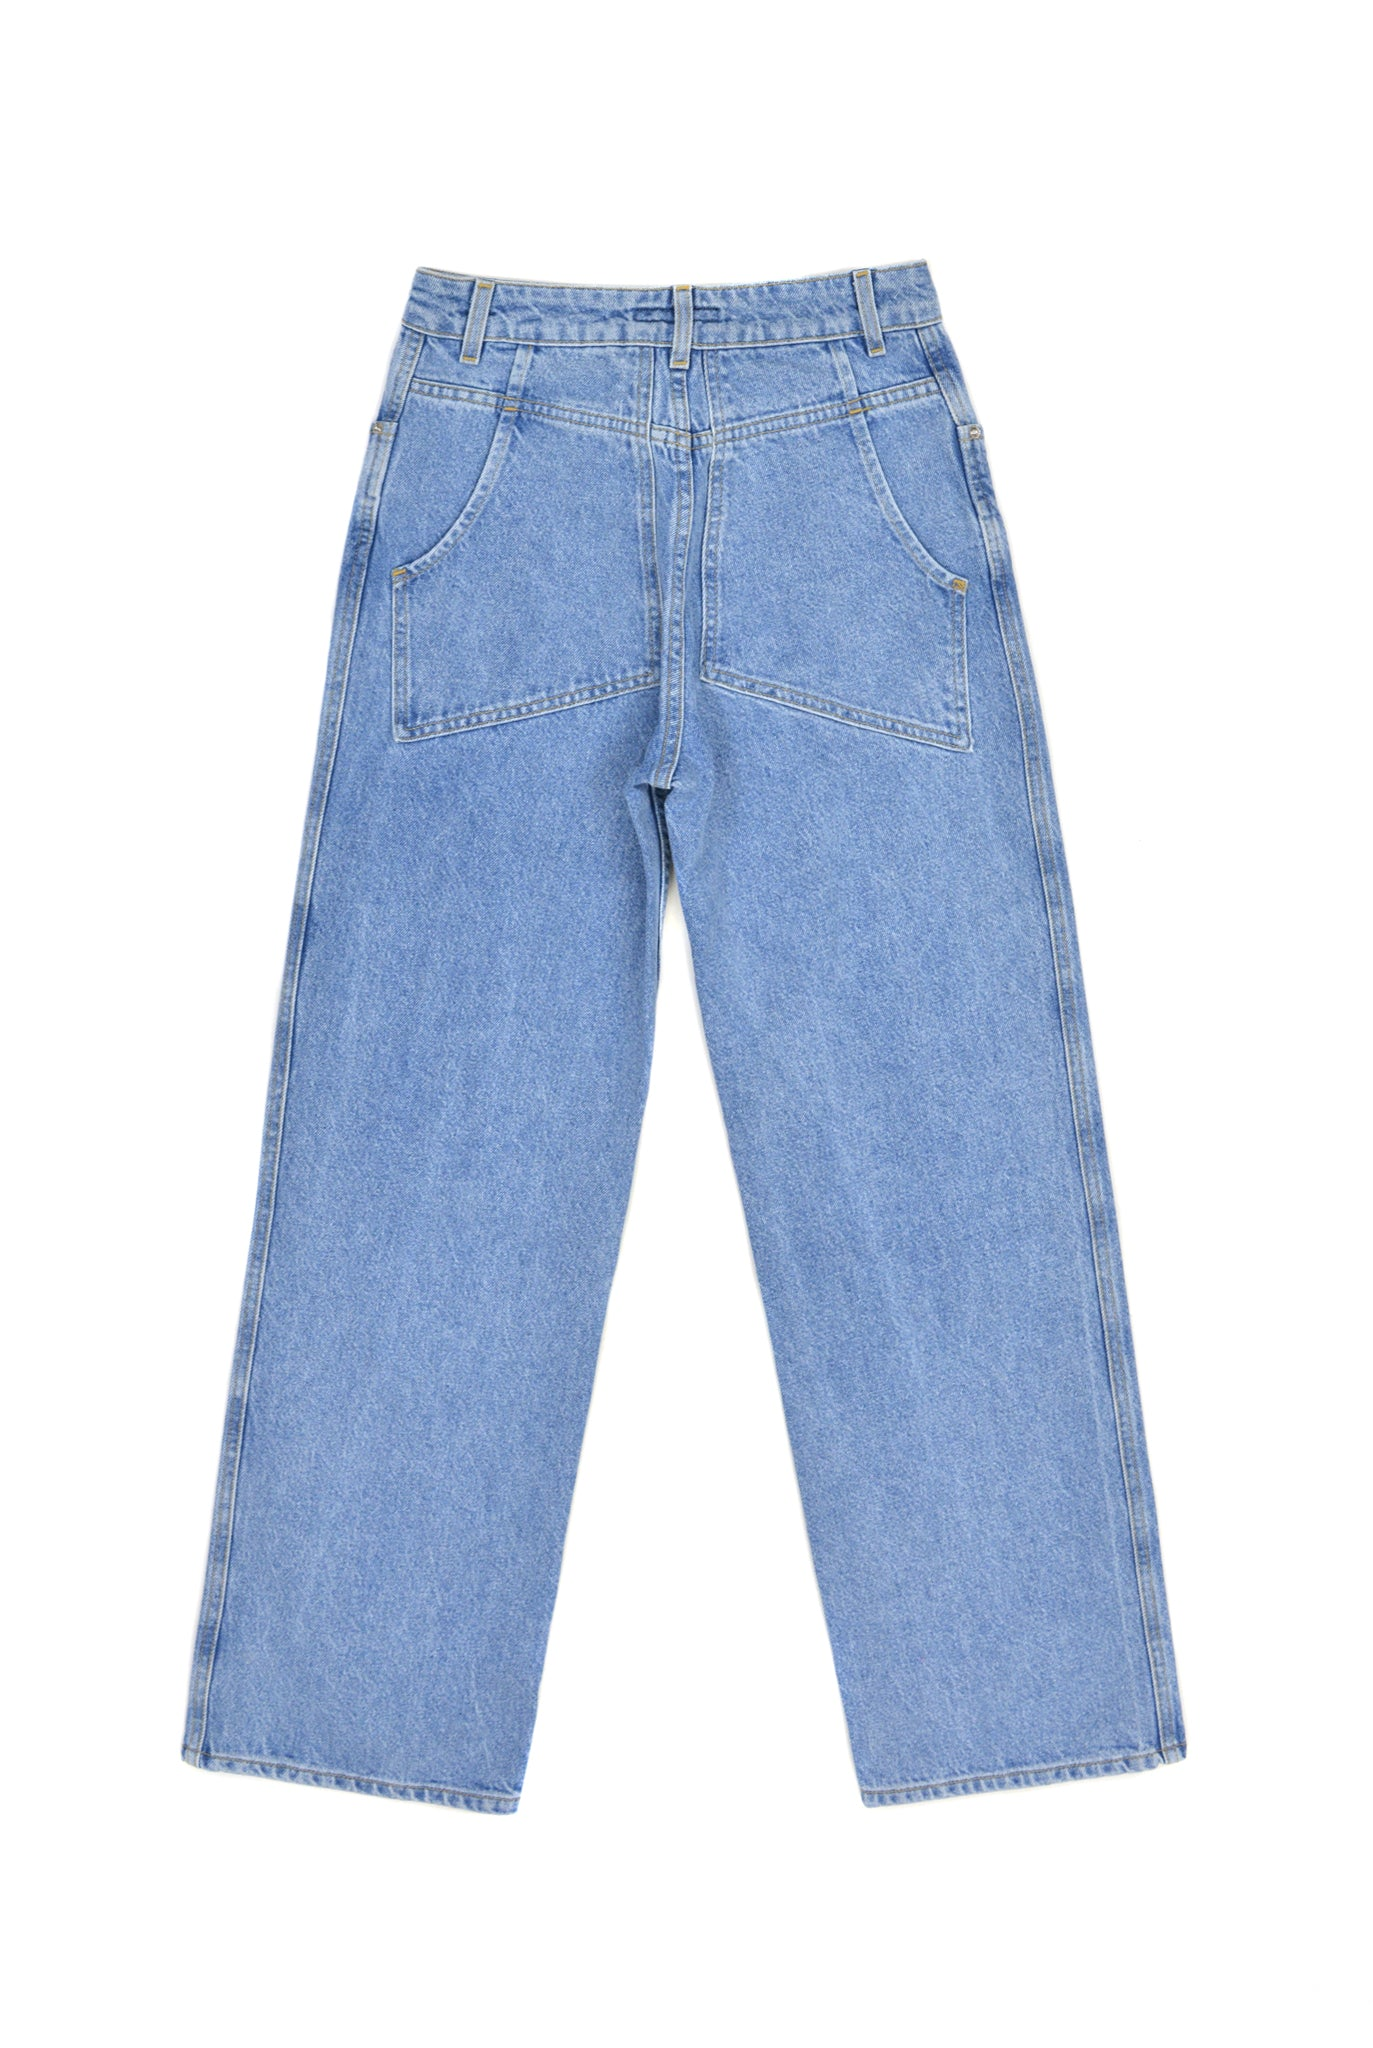 Eckhaus Latta Wide Leg Jean, Blue